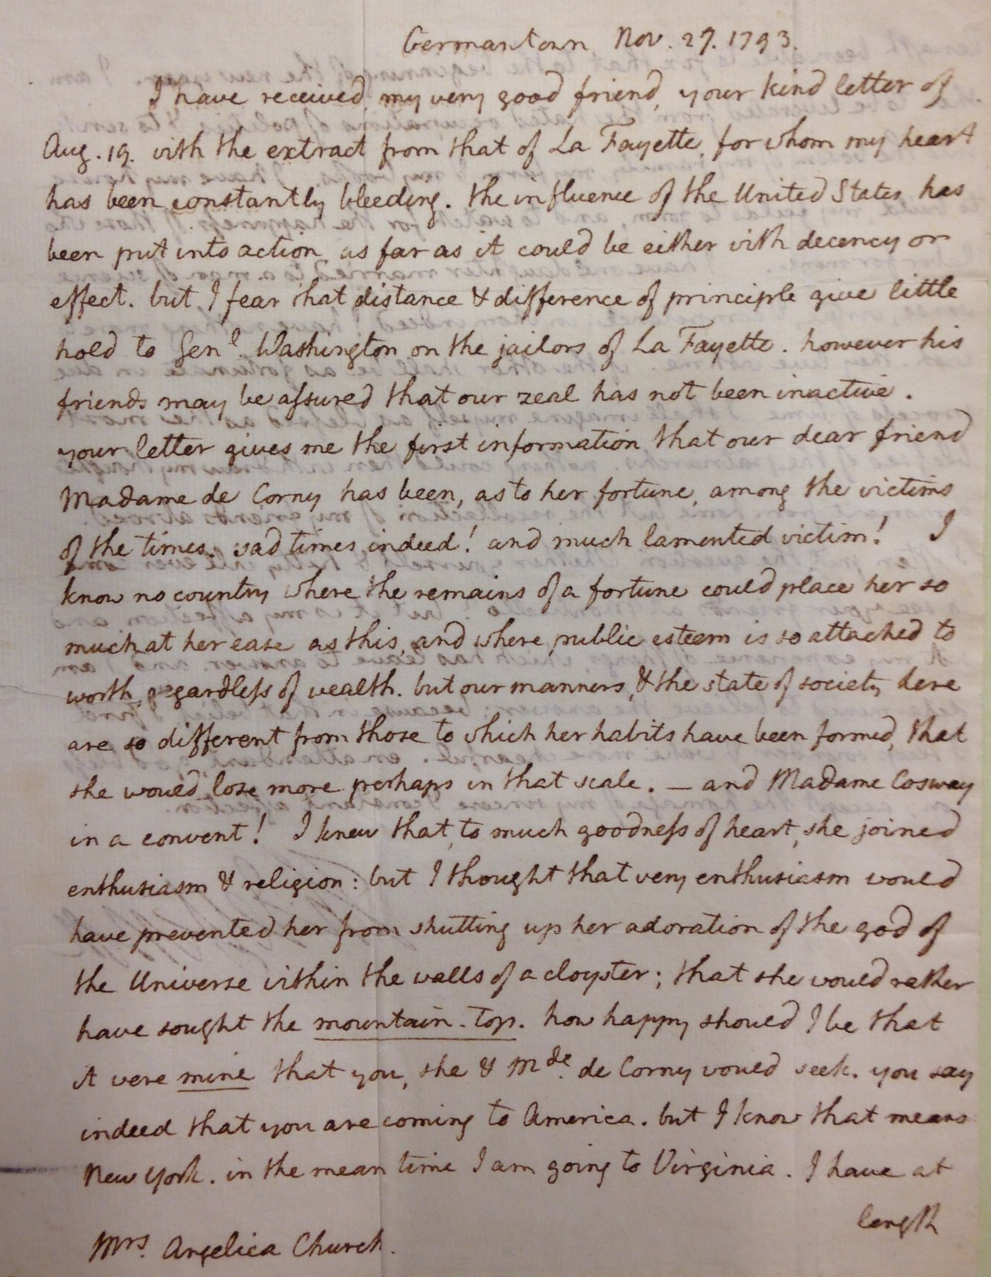 Thomas Jefferson's letter of November 27, 1793 to Angelica Schuyler Church, in which he discusses American efforts to free Lafayette from a French prison.   (MSS 11245-b)